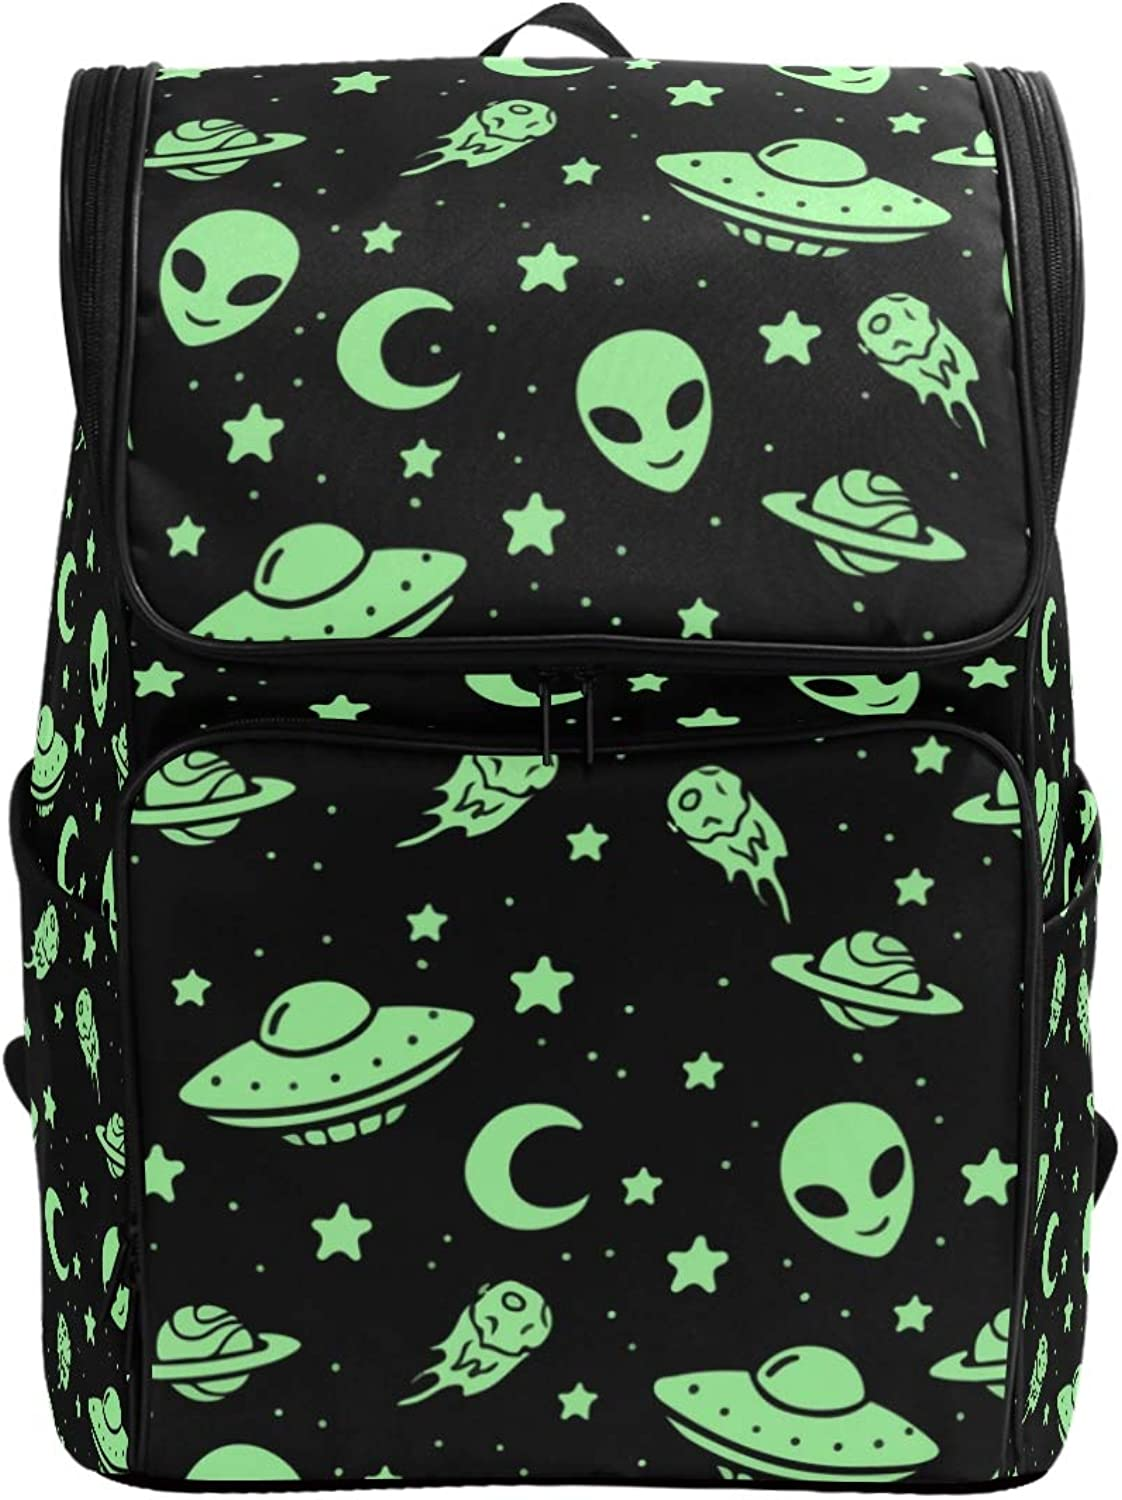 FANTAZIO Green Alien UFO Moon Laptop Outdoor Backpack Travel Hiking Camping Rucksack Pack, Casual Large College School Daypack